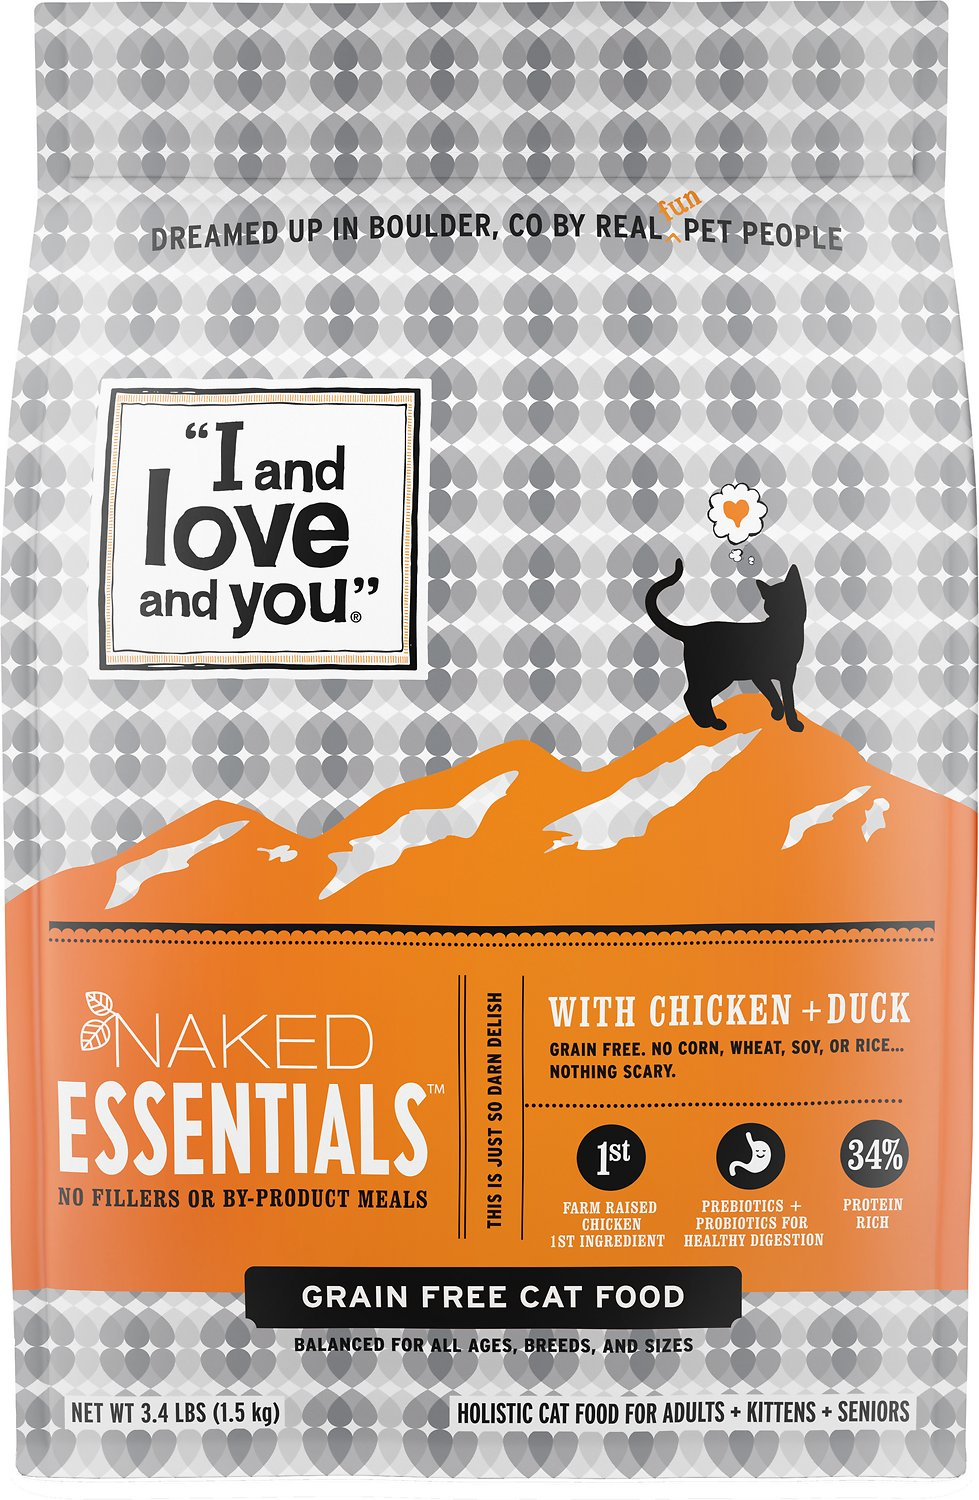 I And Love And You Naked Essentials Chicken Amp Duck Recipe